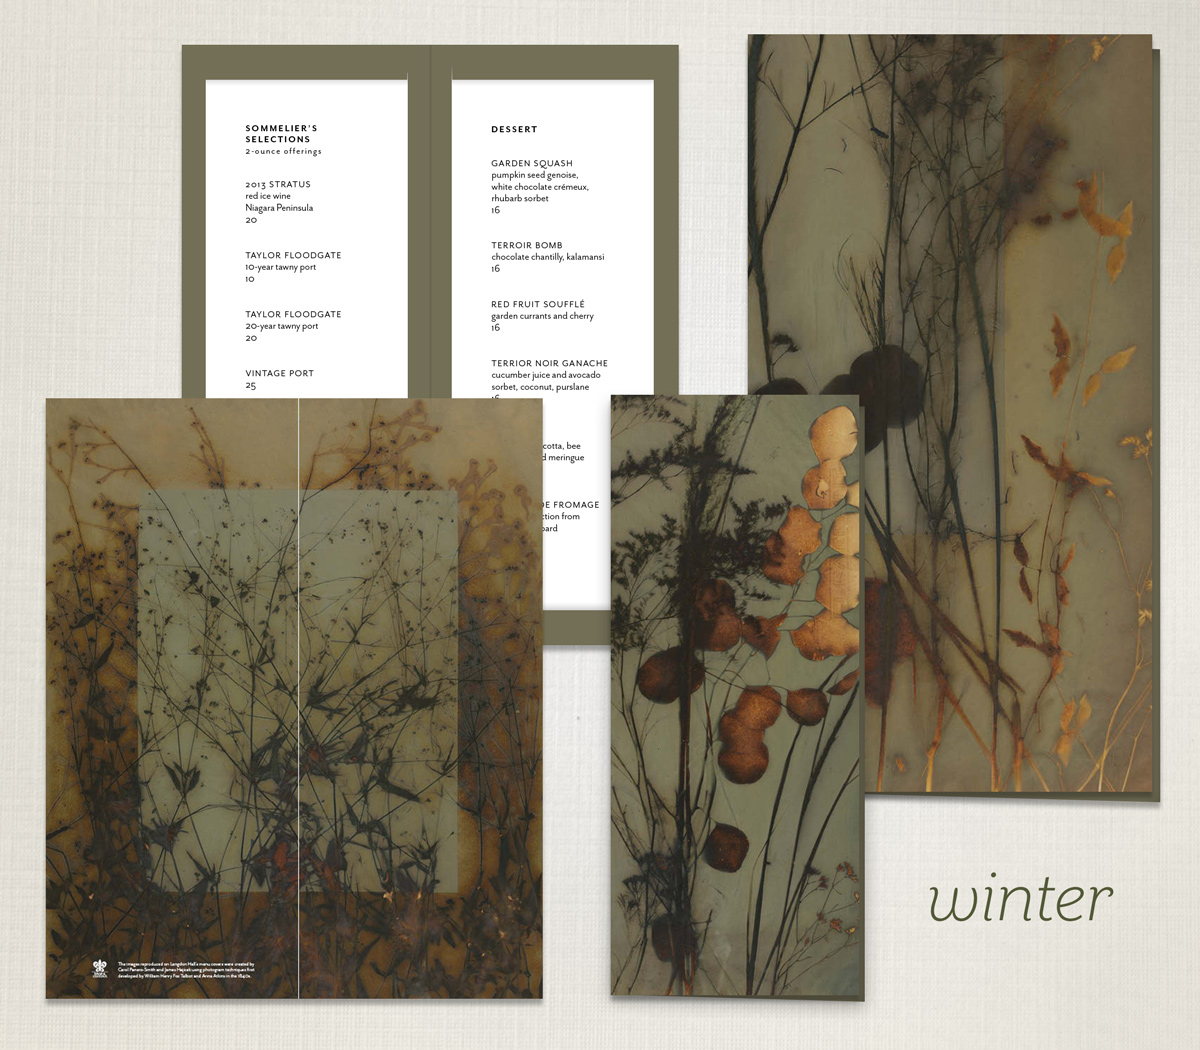 RESTAURANT-LH-Winter-menus